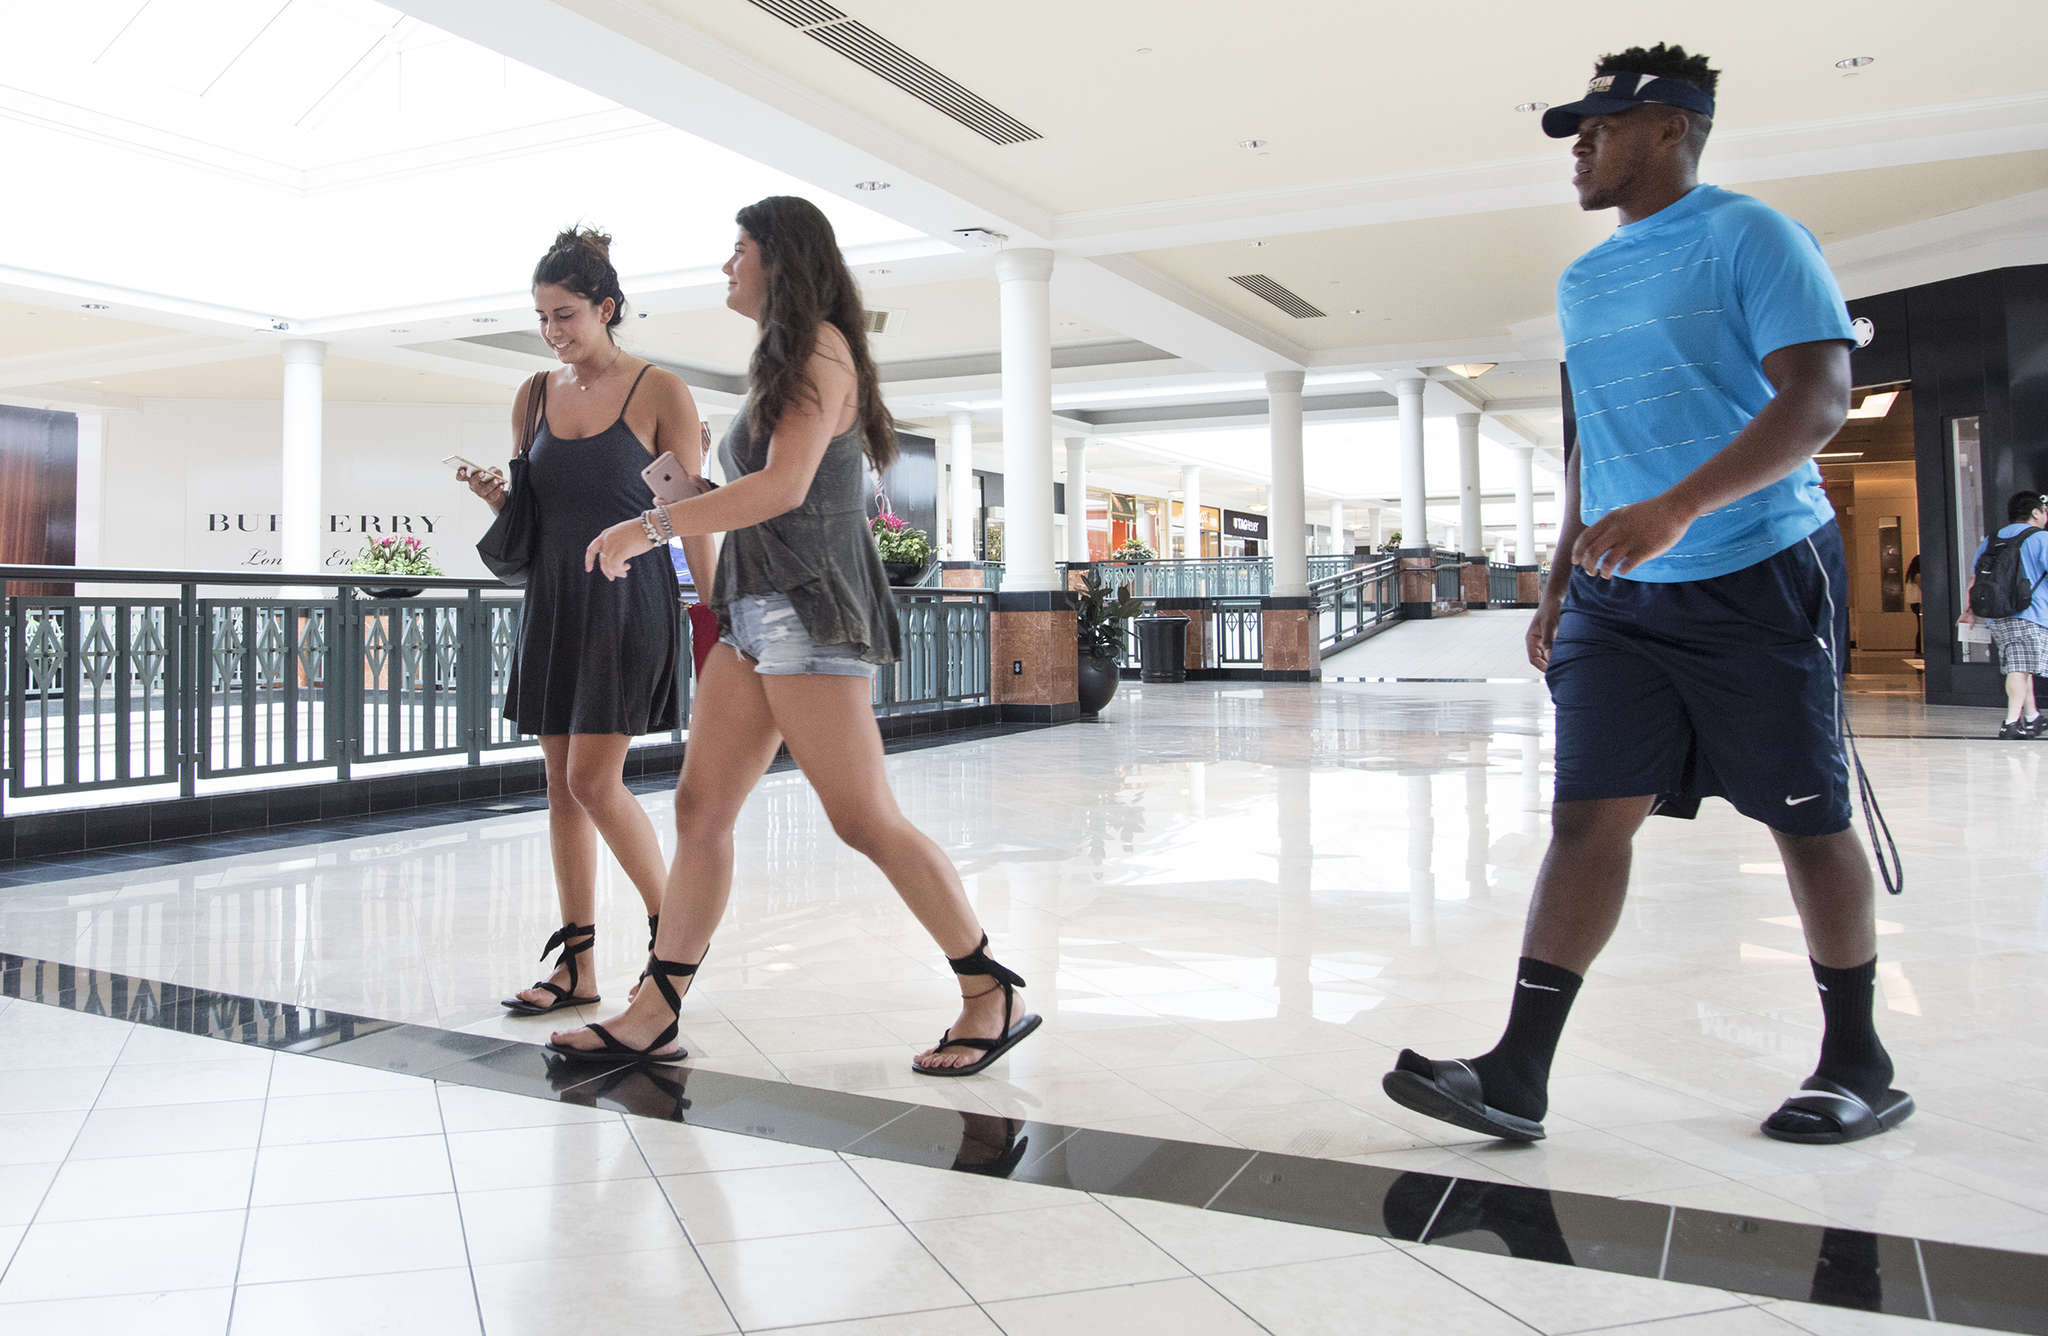 King of Prussia patrons (from left) Jen Demyan, Alessia Mattera, and Richard Mattis said they were eager to see what the luxury retailers were offering.